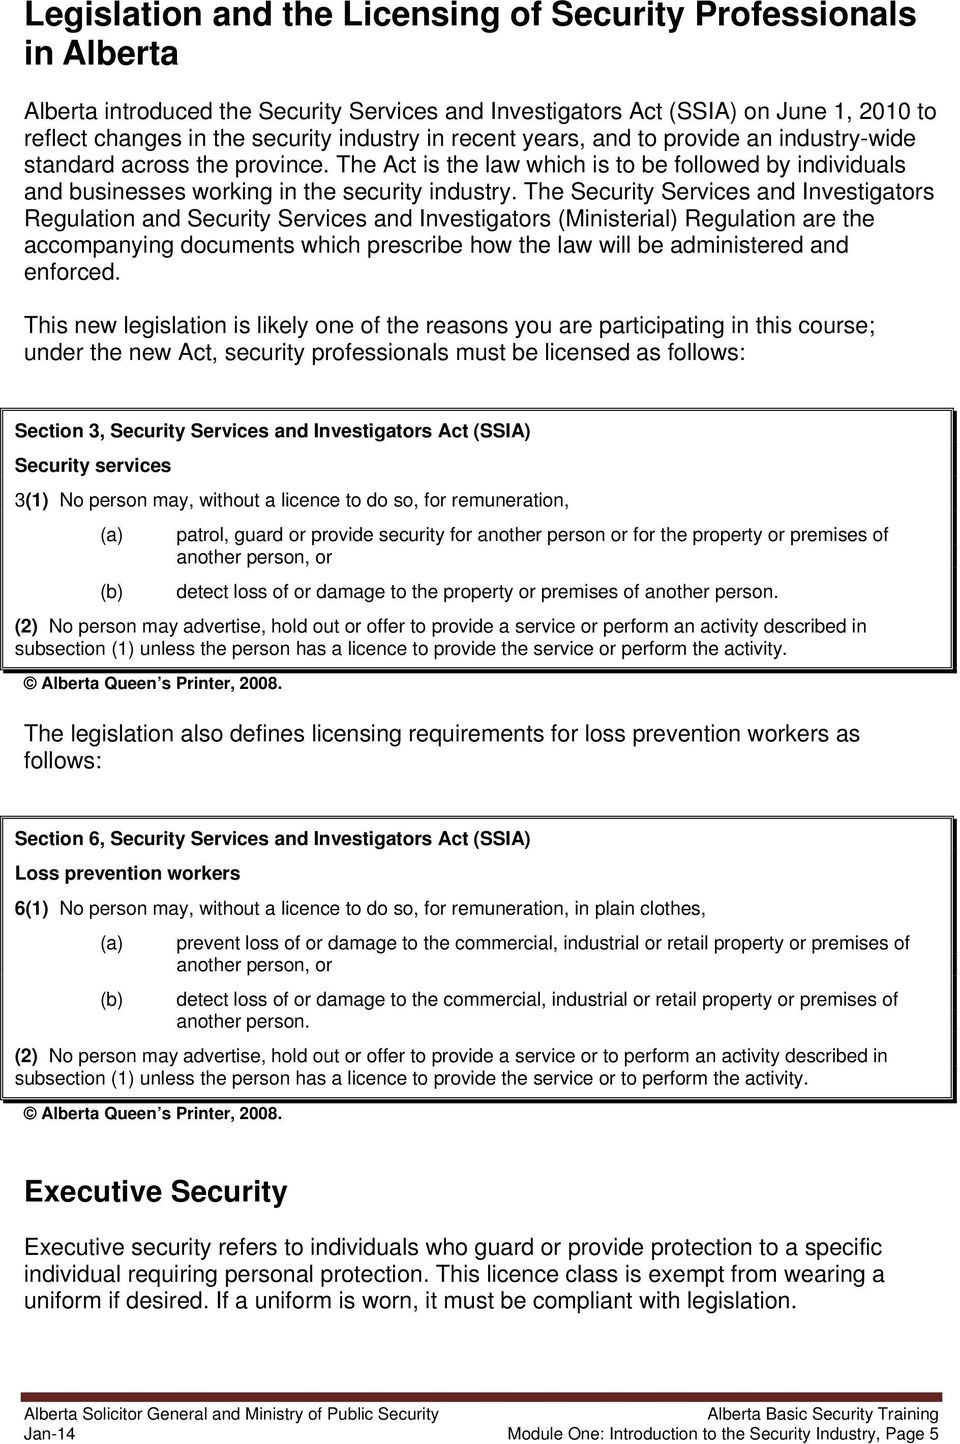 Application Form For Security Guard Licence Alberta